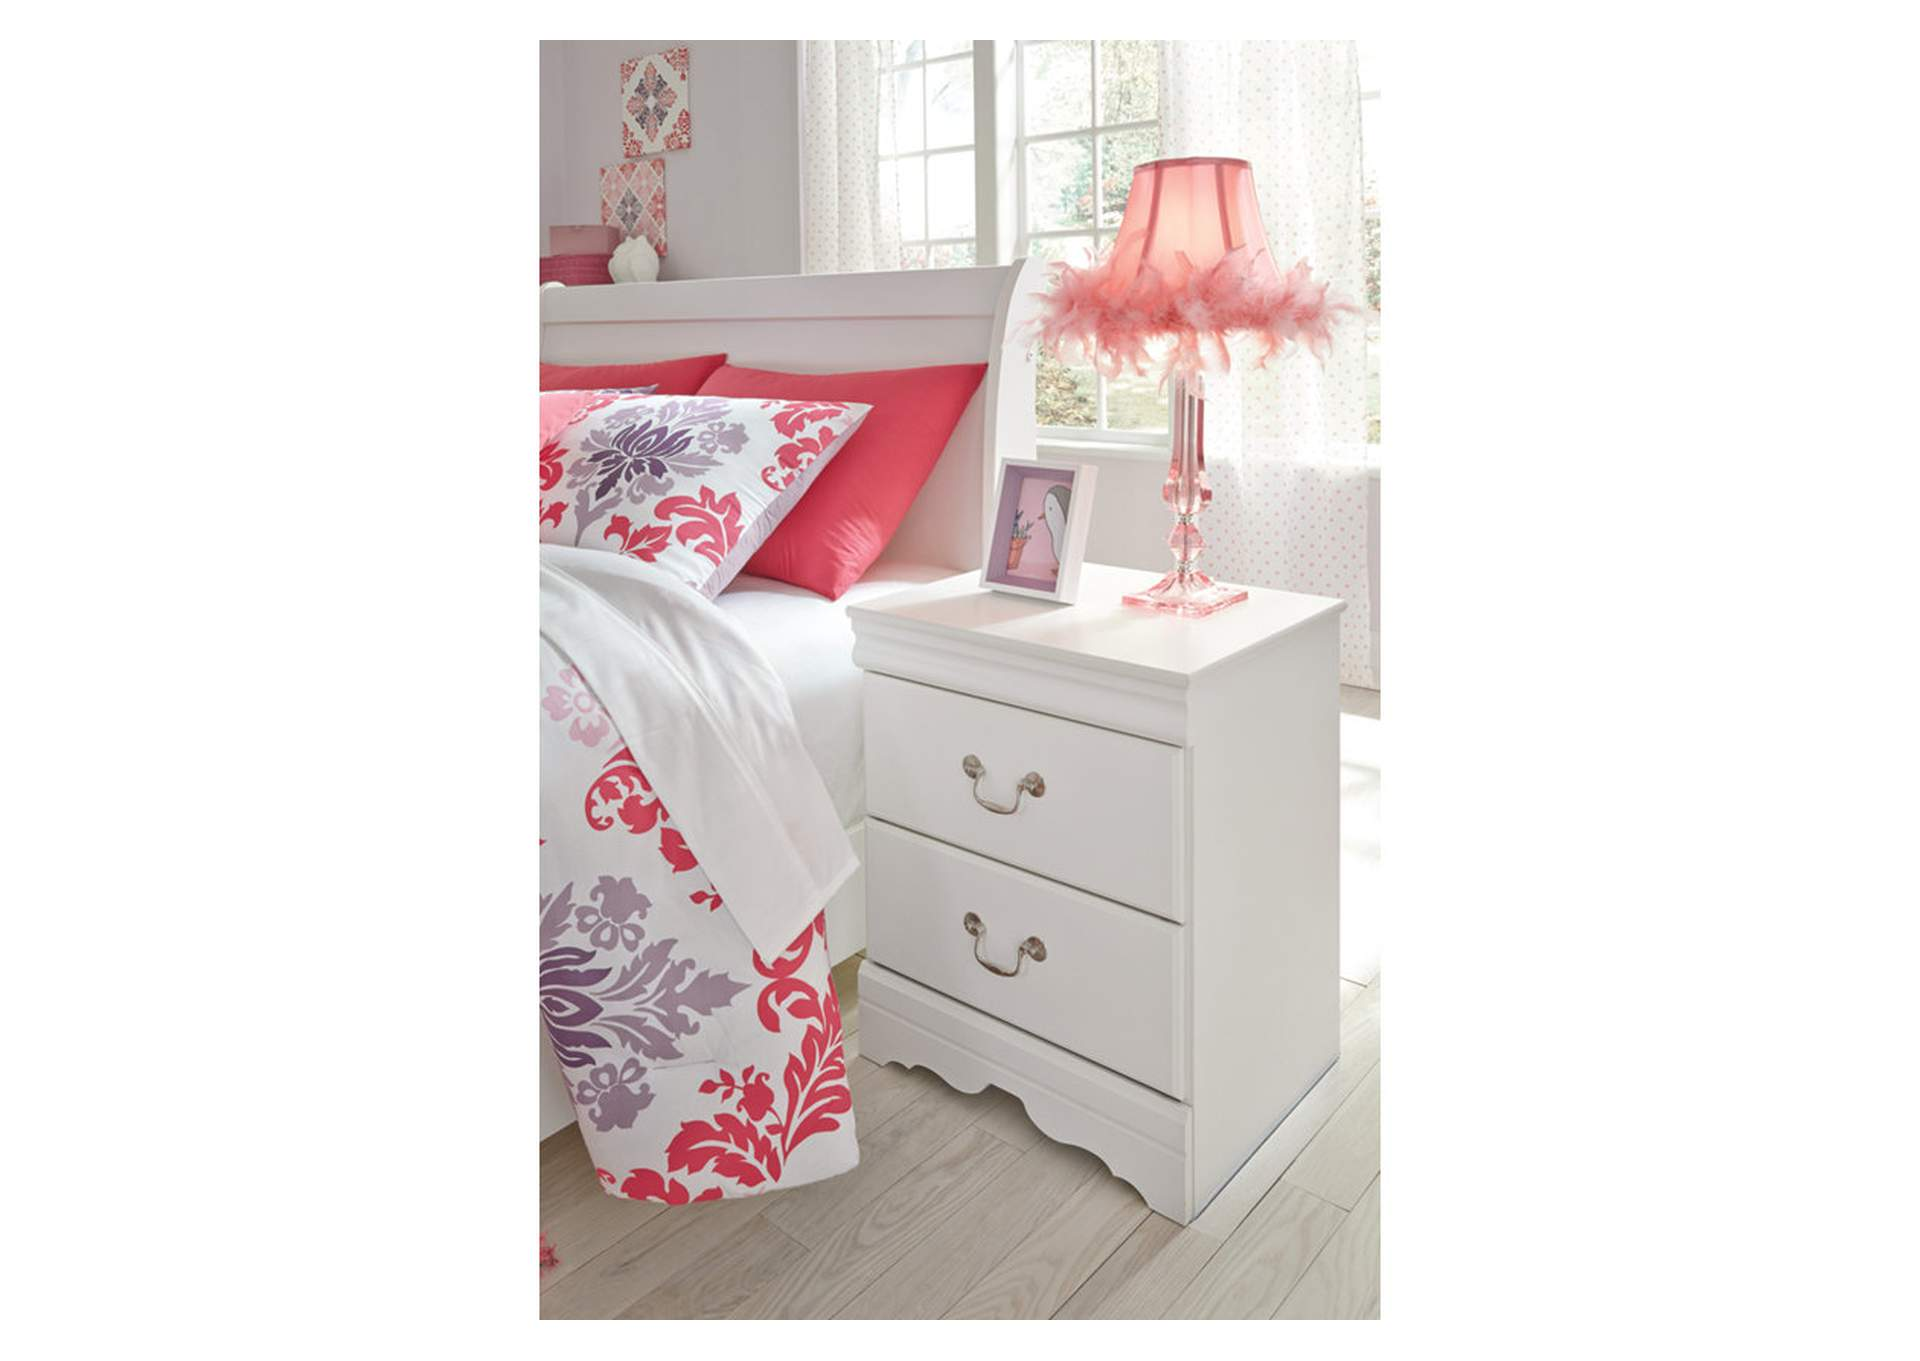 Anarasia White Two Drawer Nightstand,Direct To Consumer Express